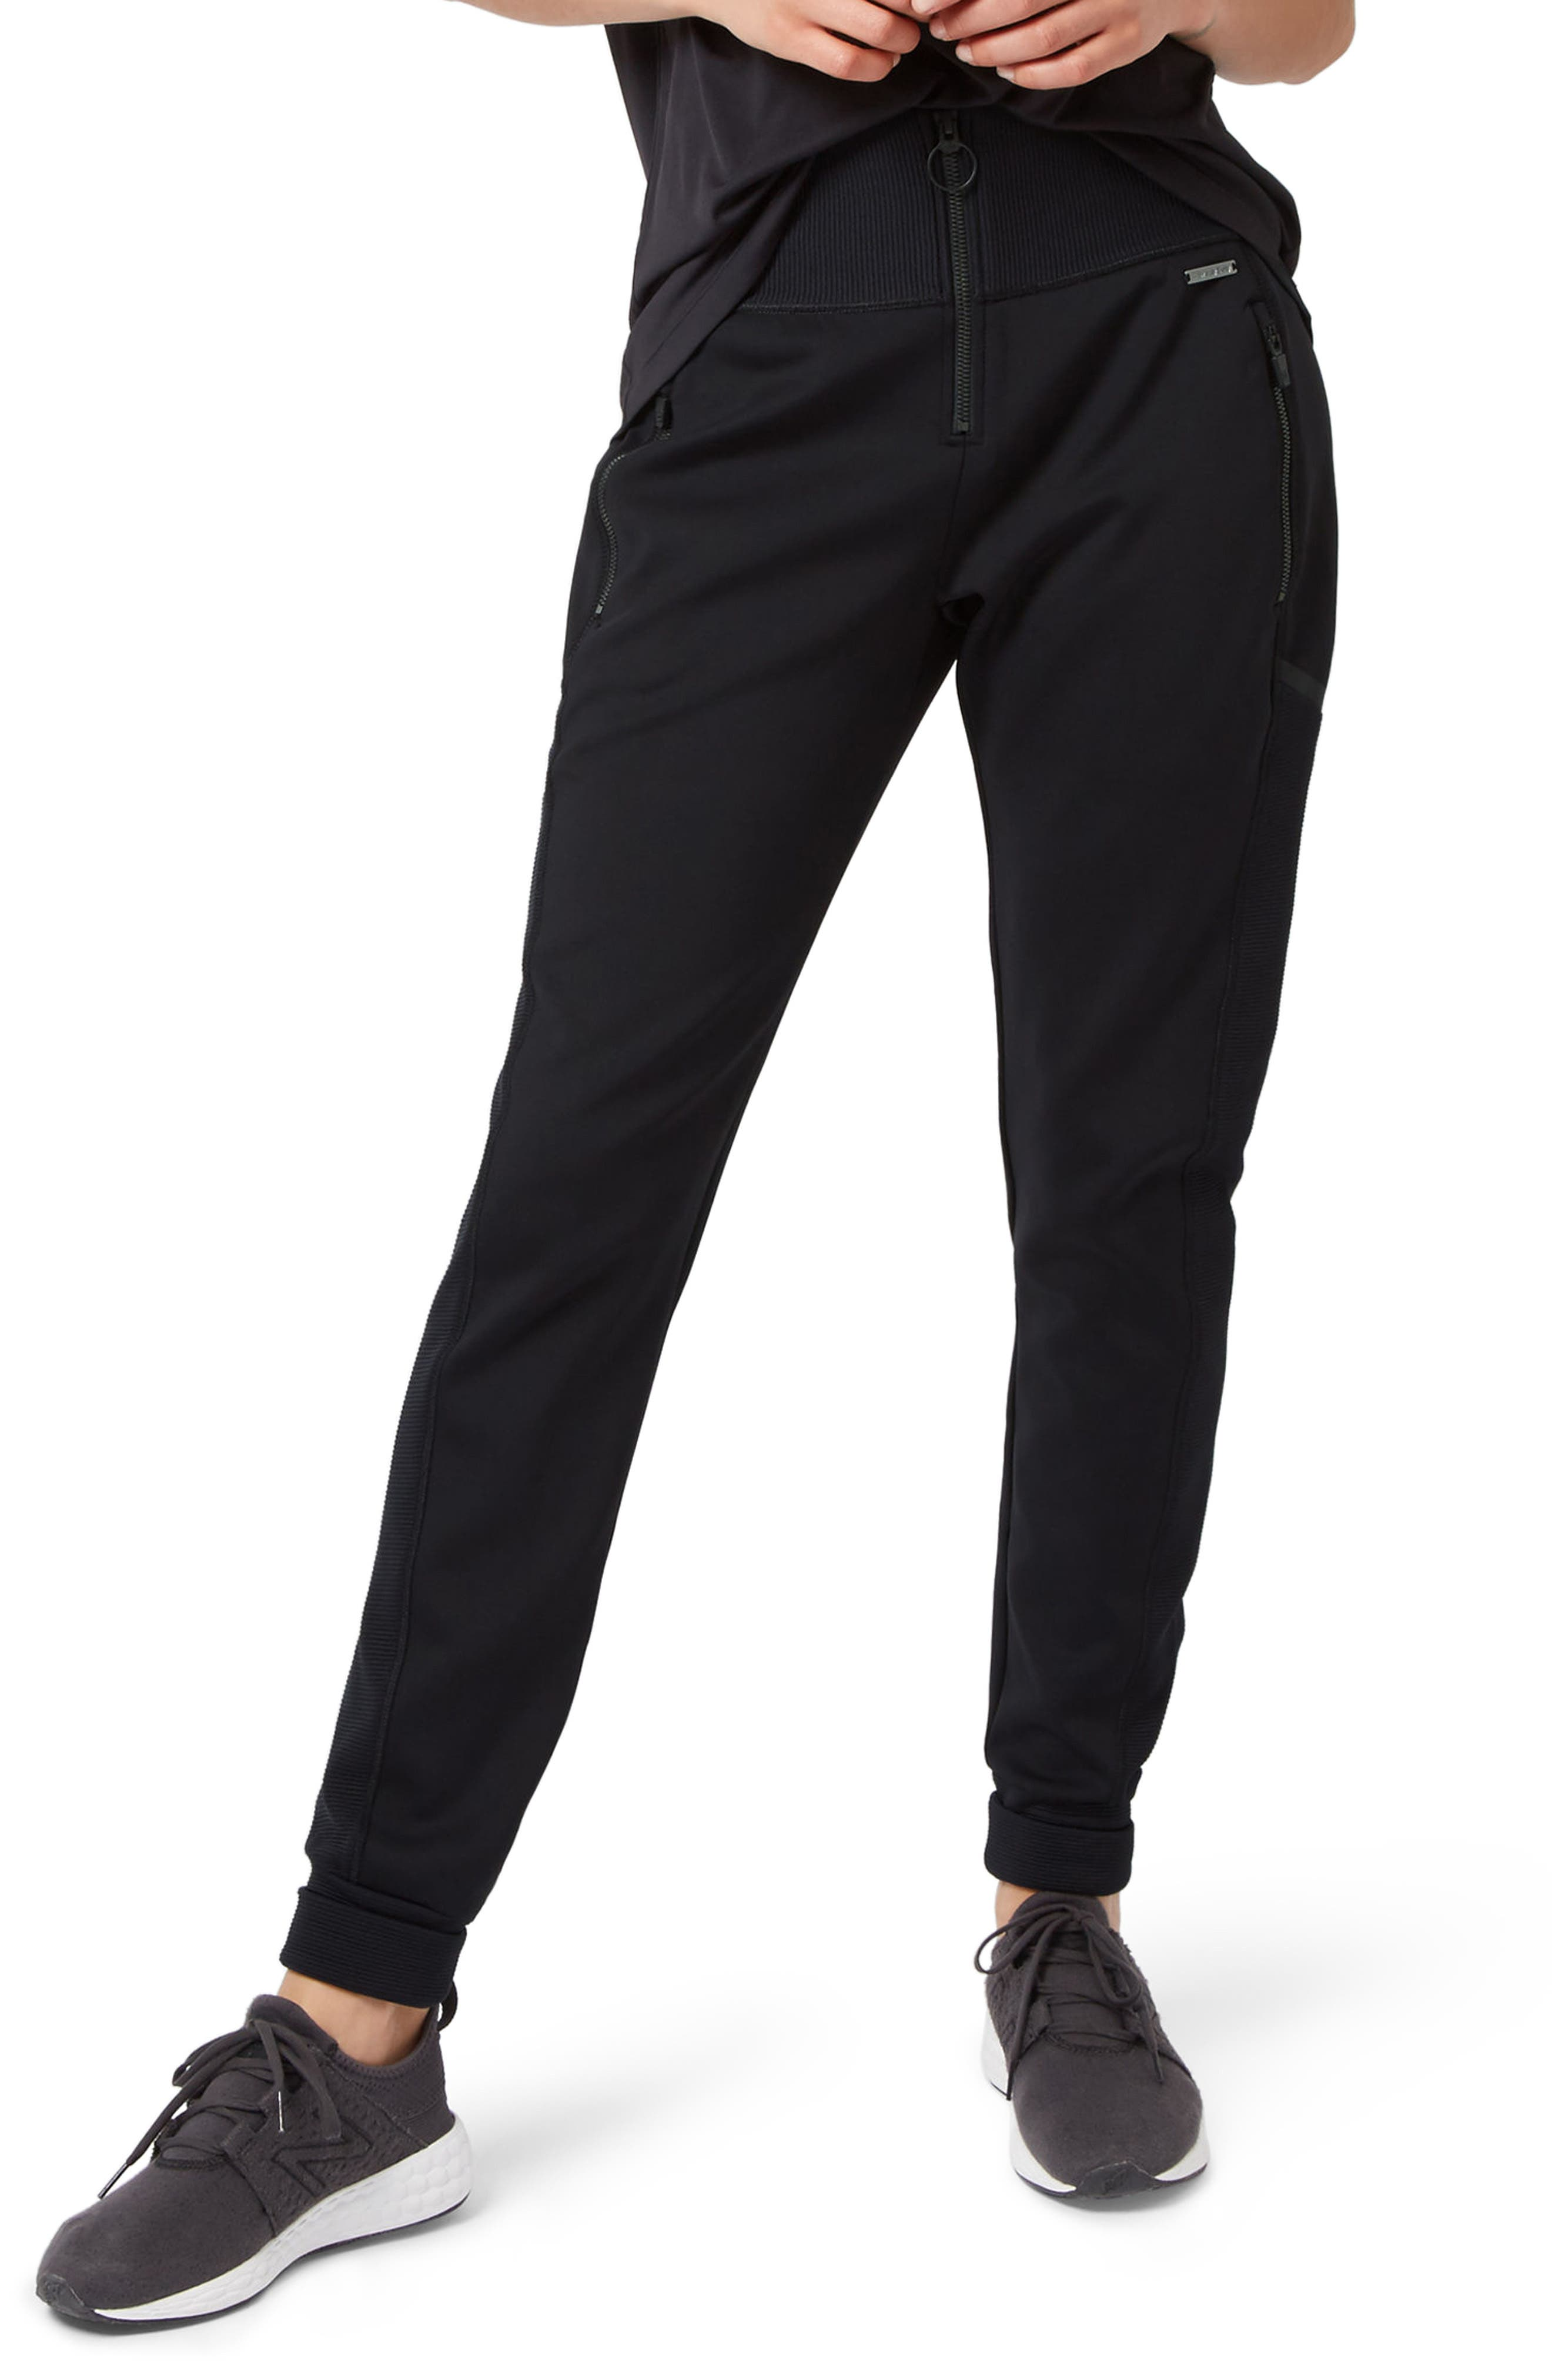 Flex Sweatpants,                             Main thumbnail 1, color,                             Black